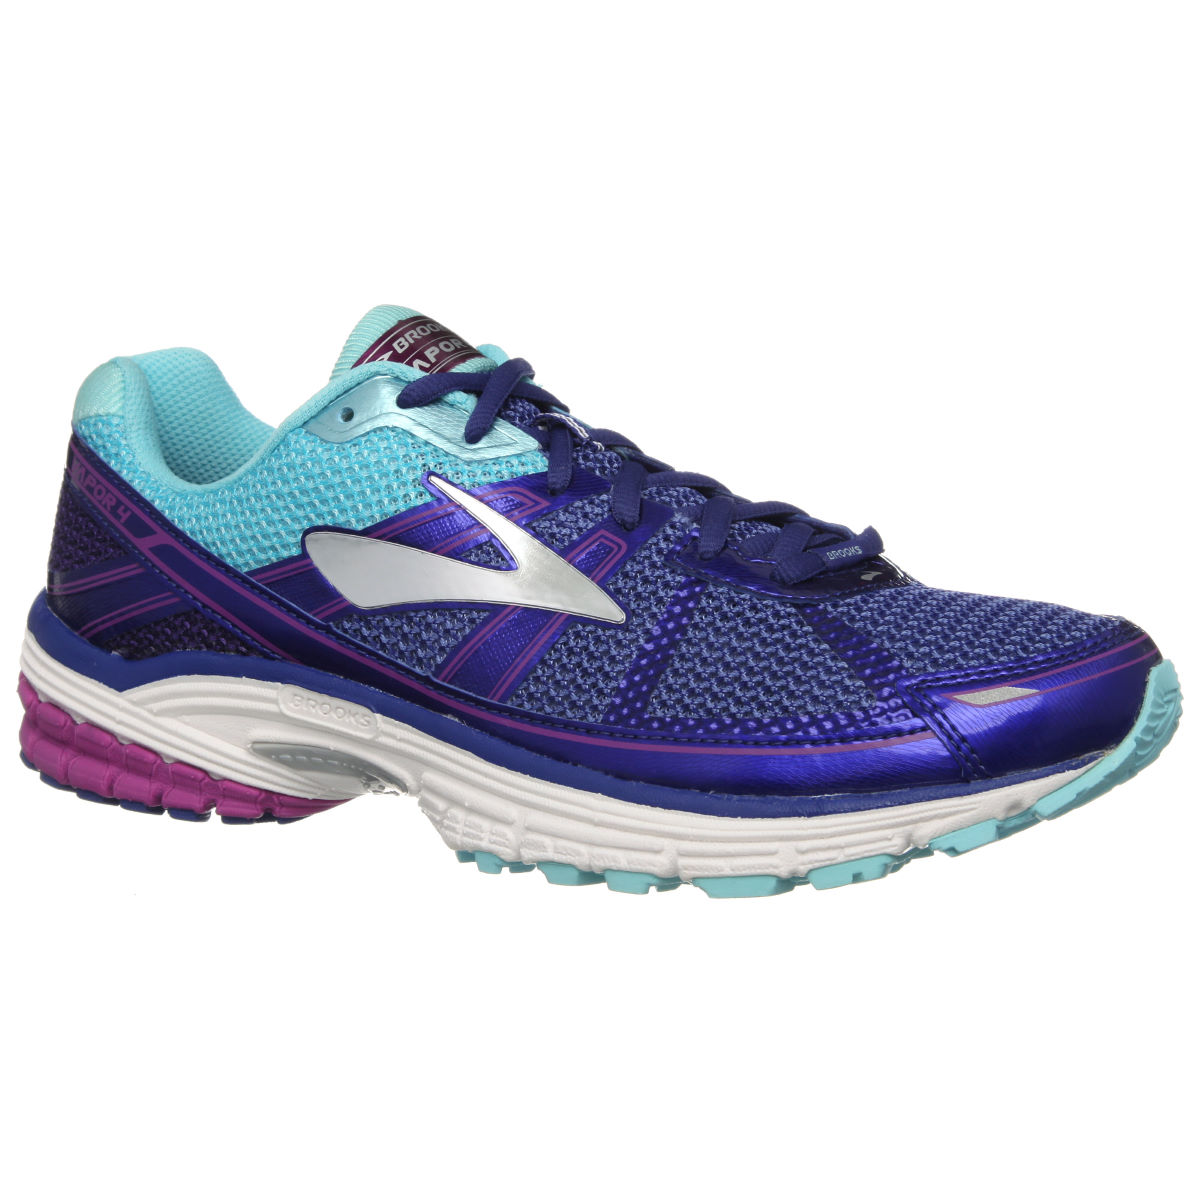 Chaussures Femme Brooks Vapor 4 - UK 4 HyacinthViolet/Peaco